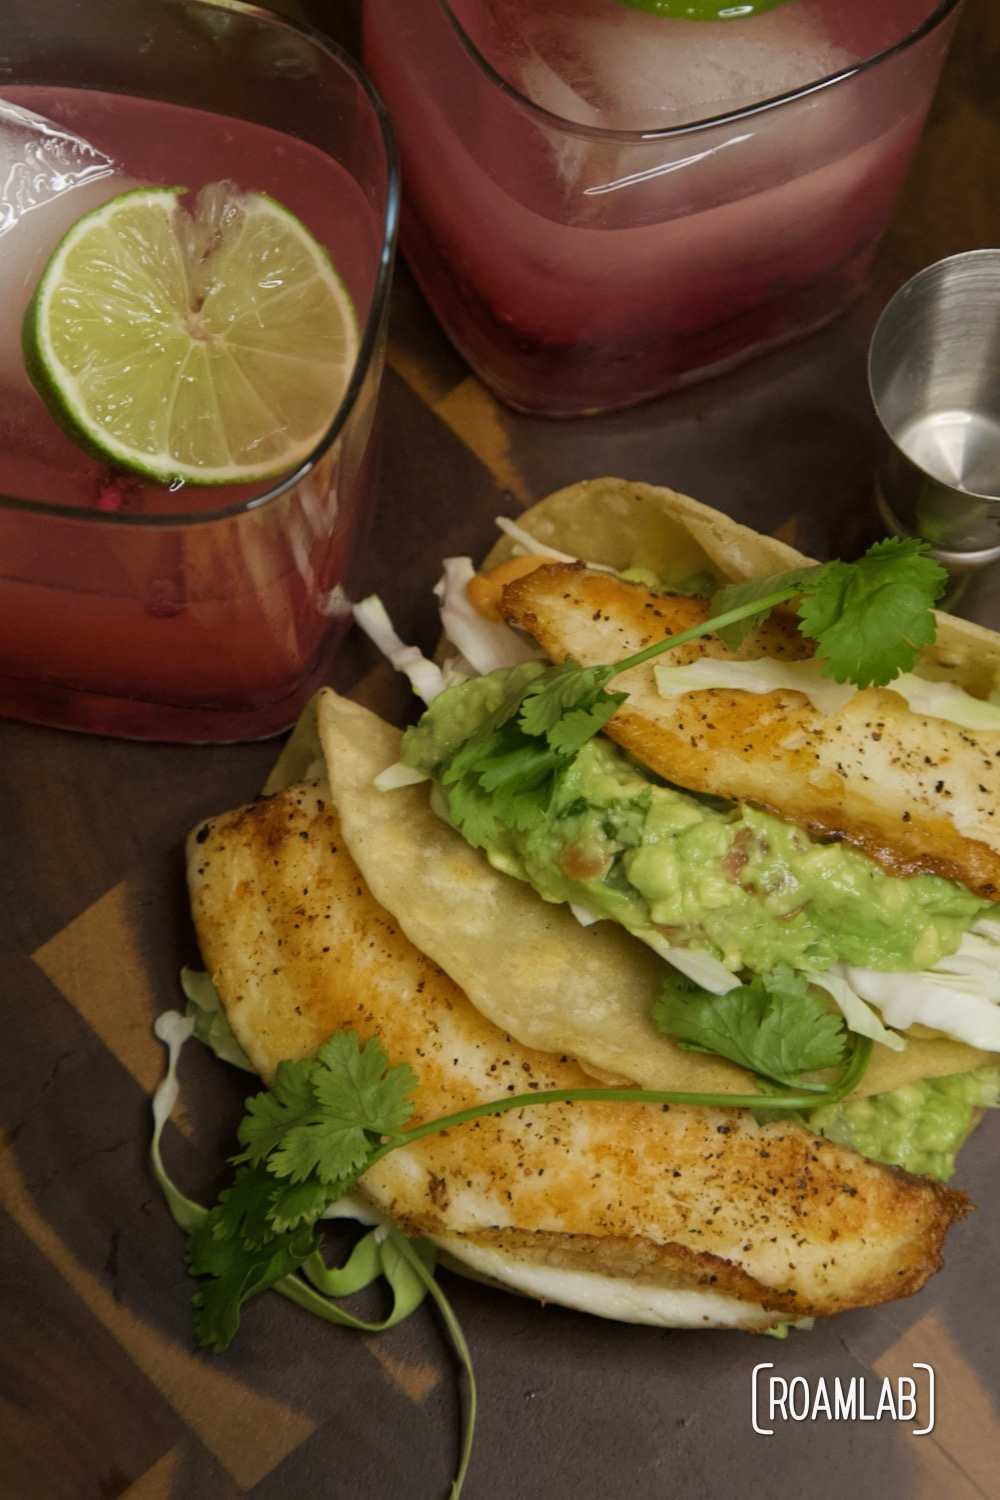 Tilapia fish tacos with guacamole and pomegranate margaritas.